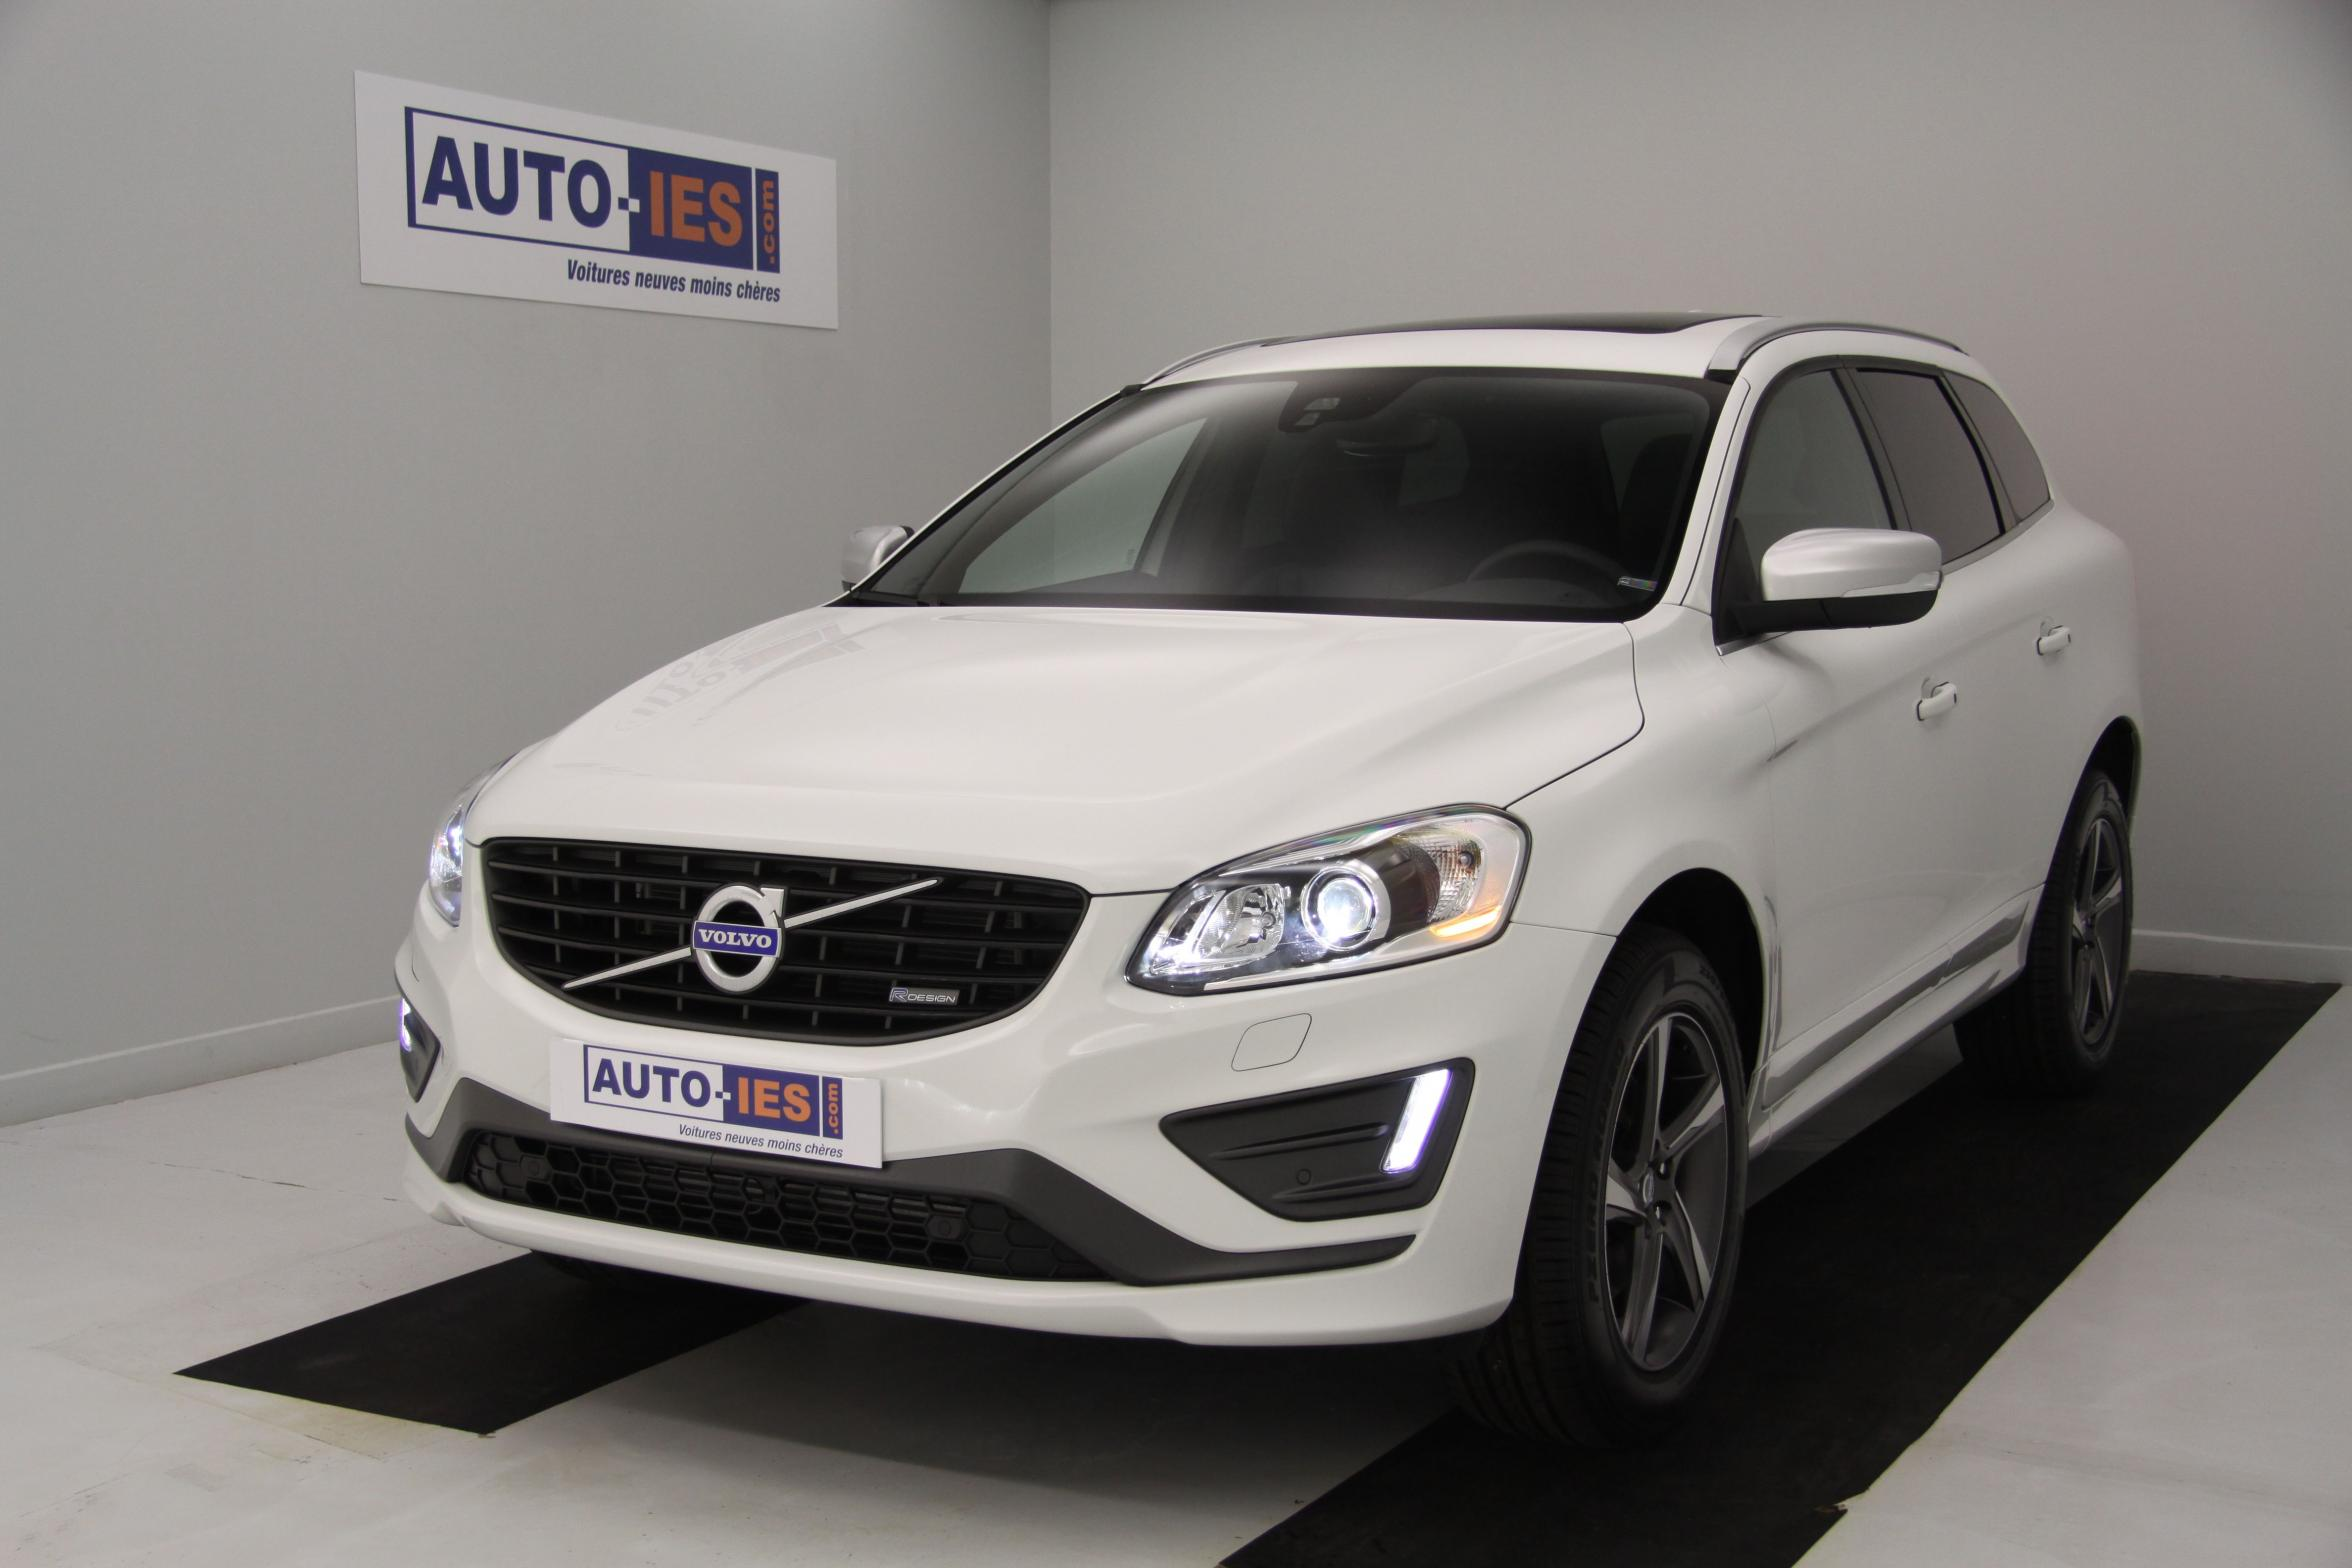 volvo xc60 d5 awd 215 ch r design geartronic a blanc glace v hicule de direction avec 5500 kms. Black Bedroom Furniture Sets. Home Design Ideas